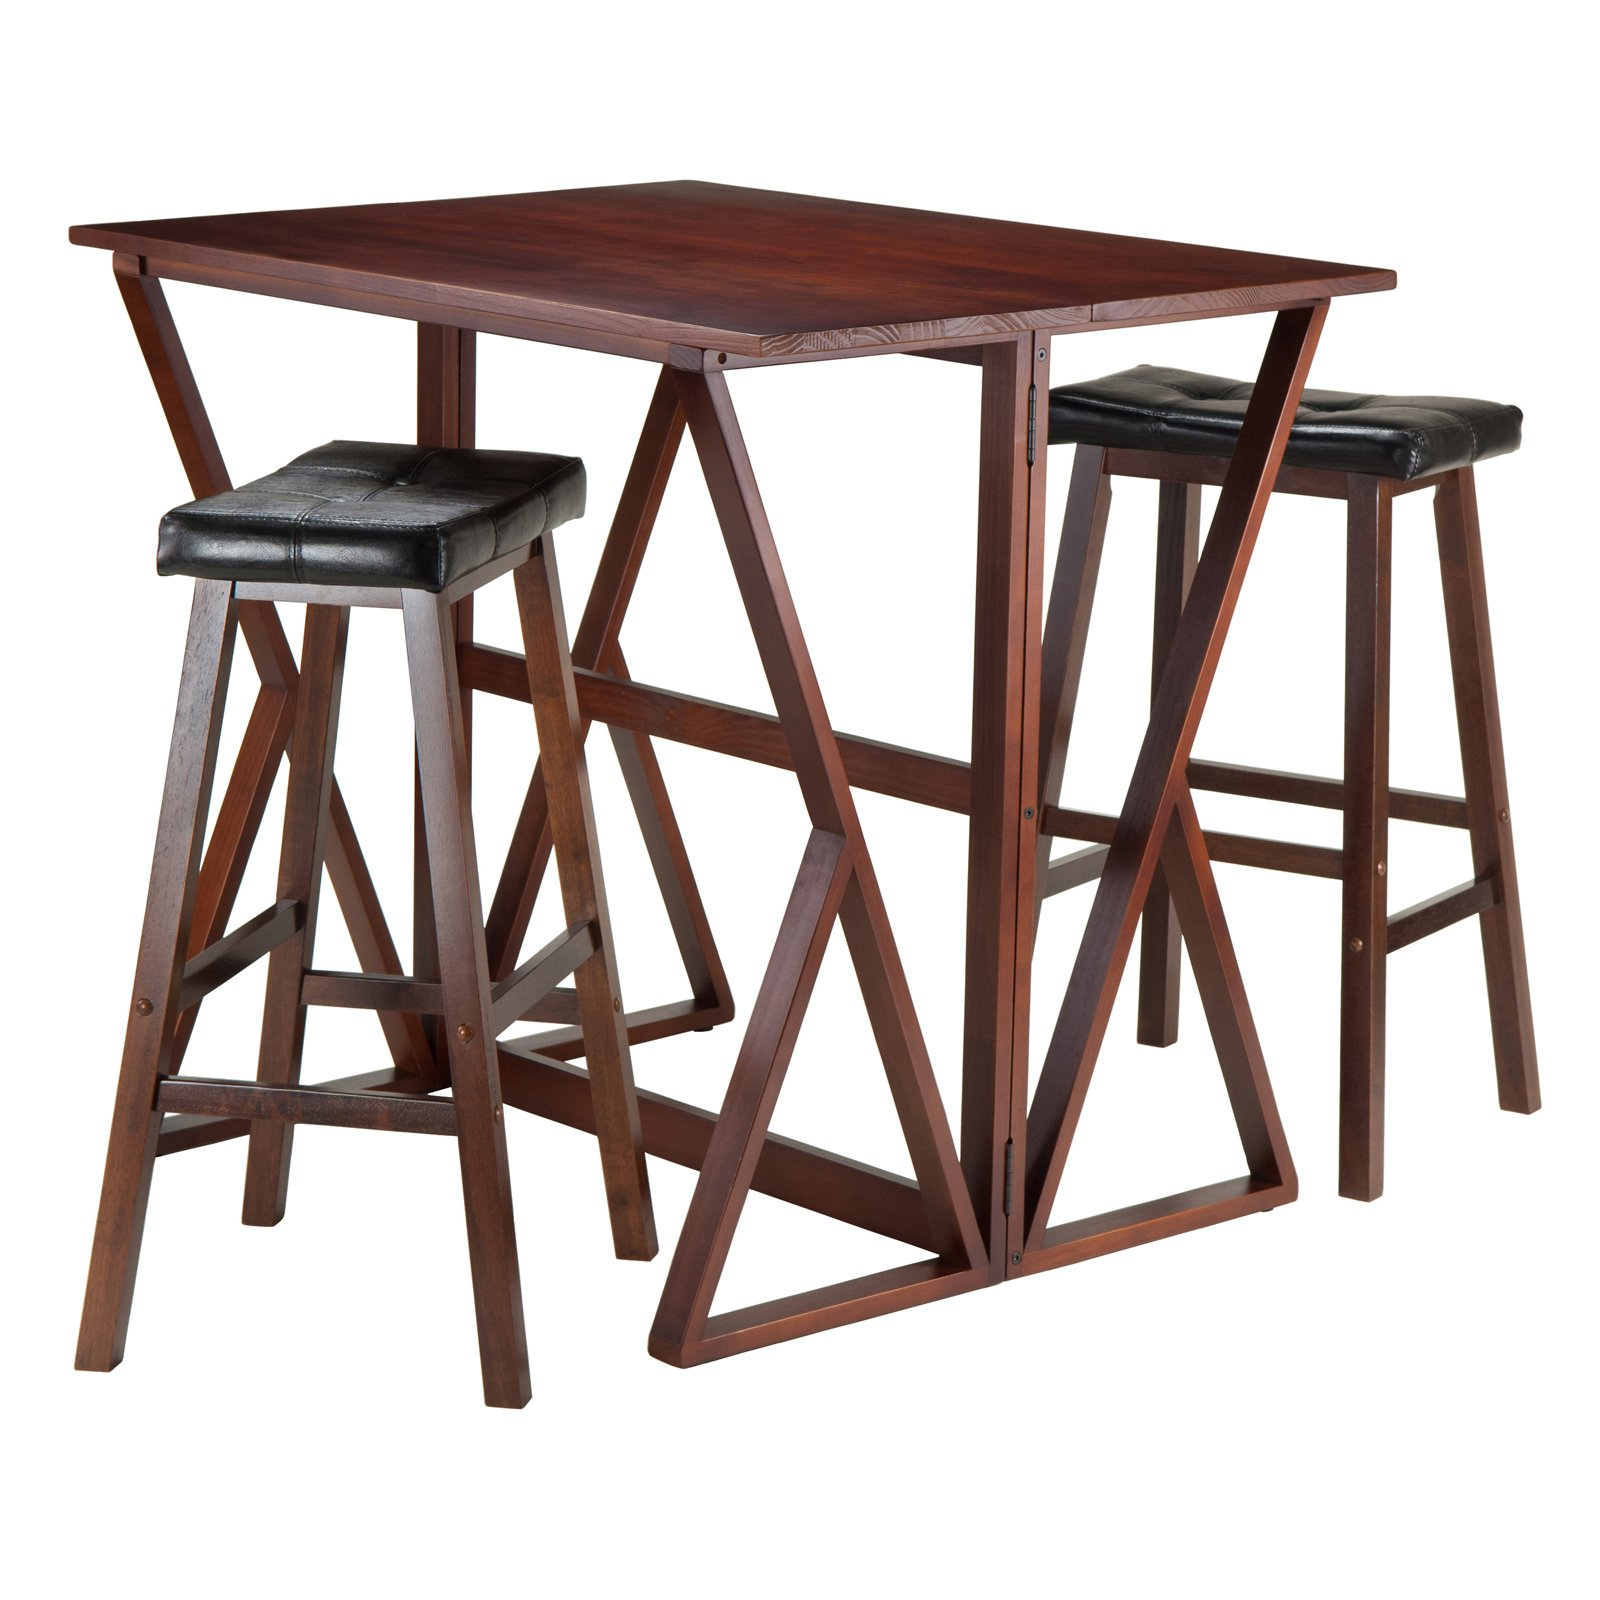 Famous Winsome Trading Harrington 3 Piece Counter Height Dining Table Set Pertaining To Winsome 3 Piece Counter Height Dining Sets (View 15 of 20)